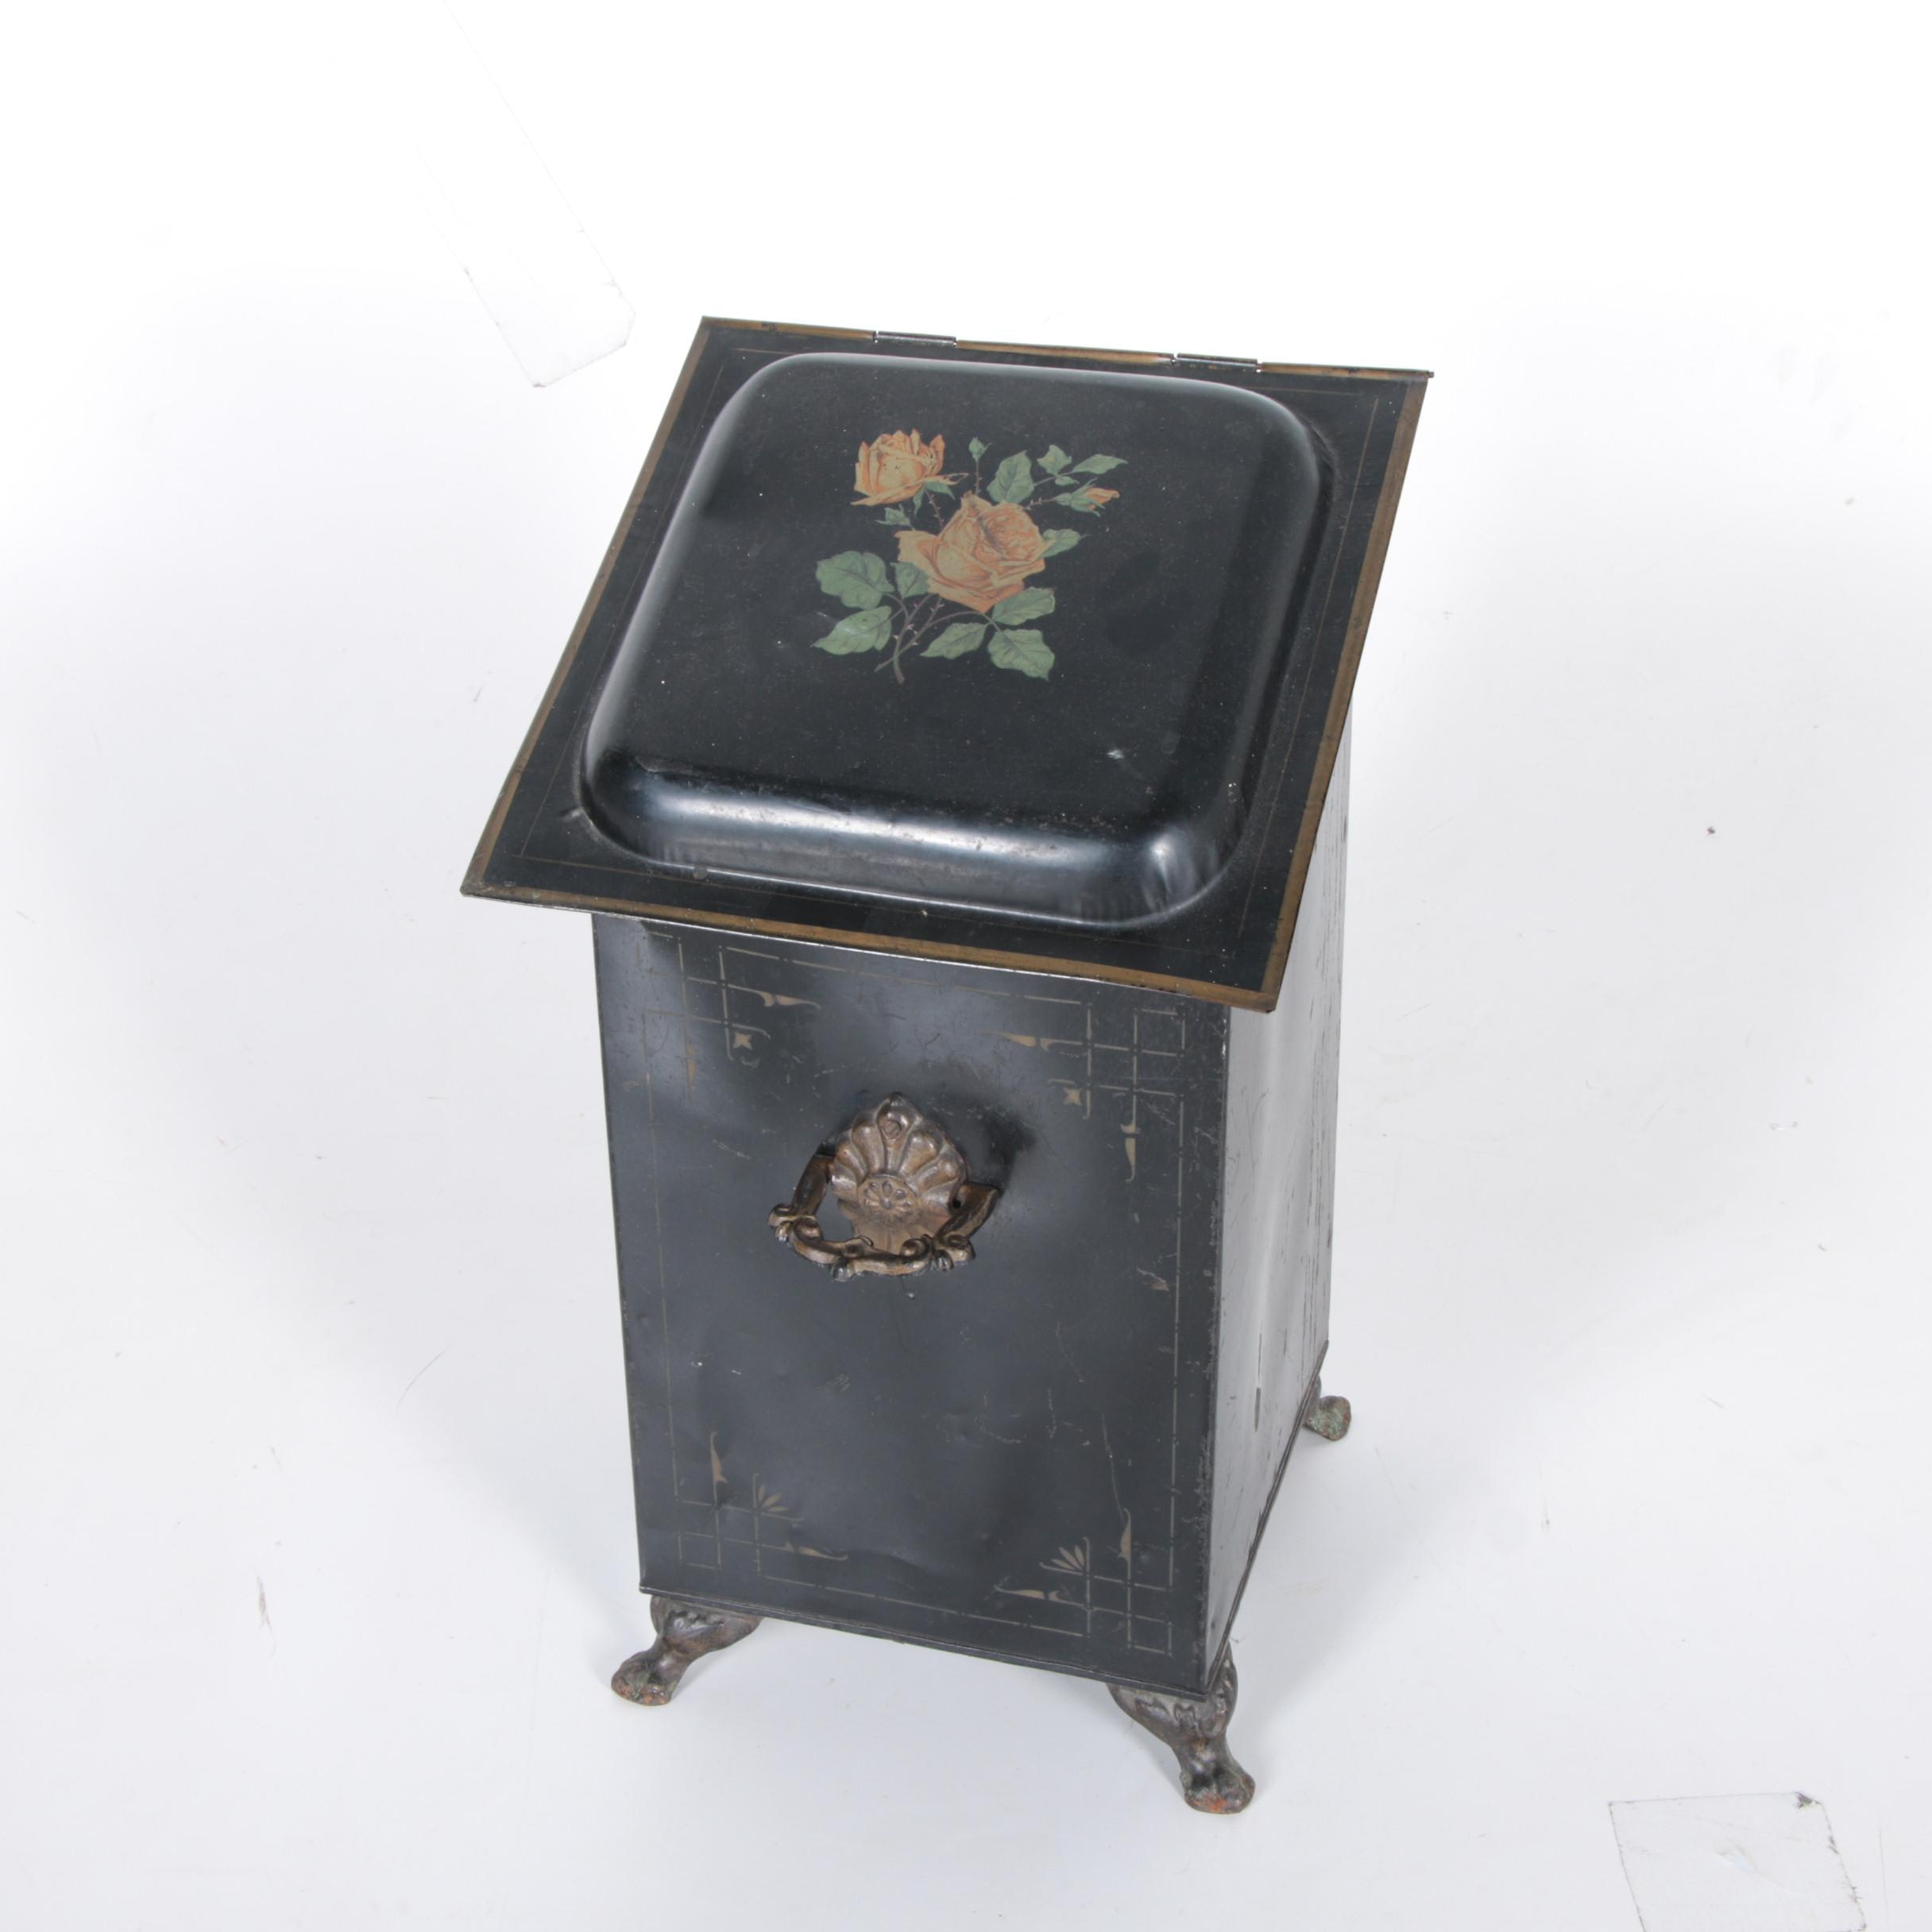 Vintage Coal Scuttle and Scoop